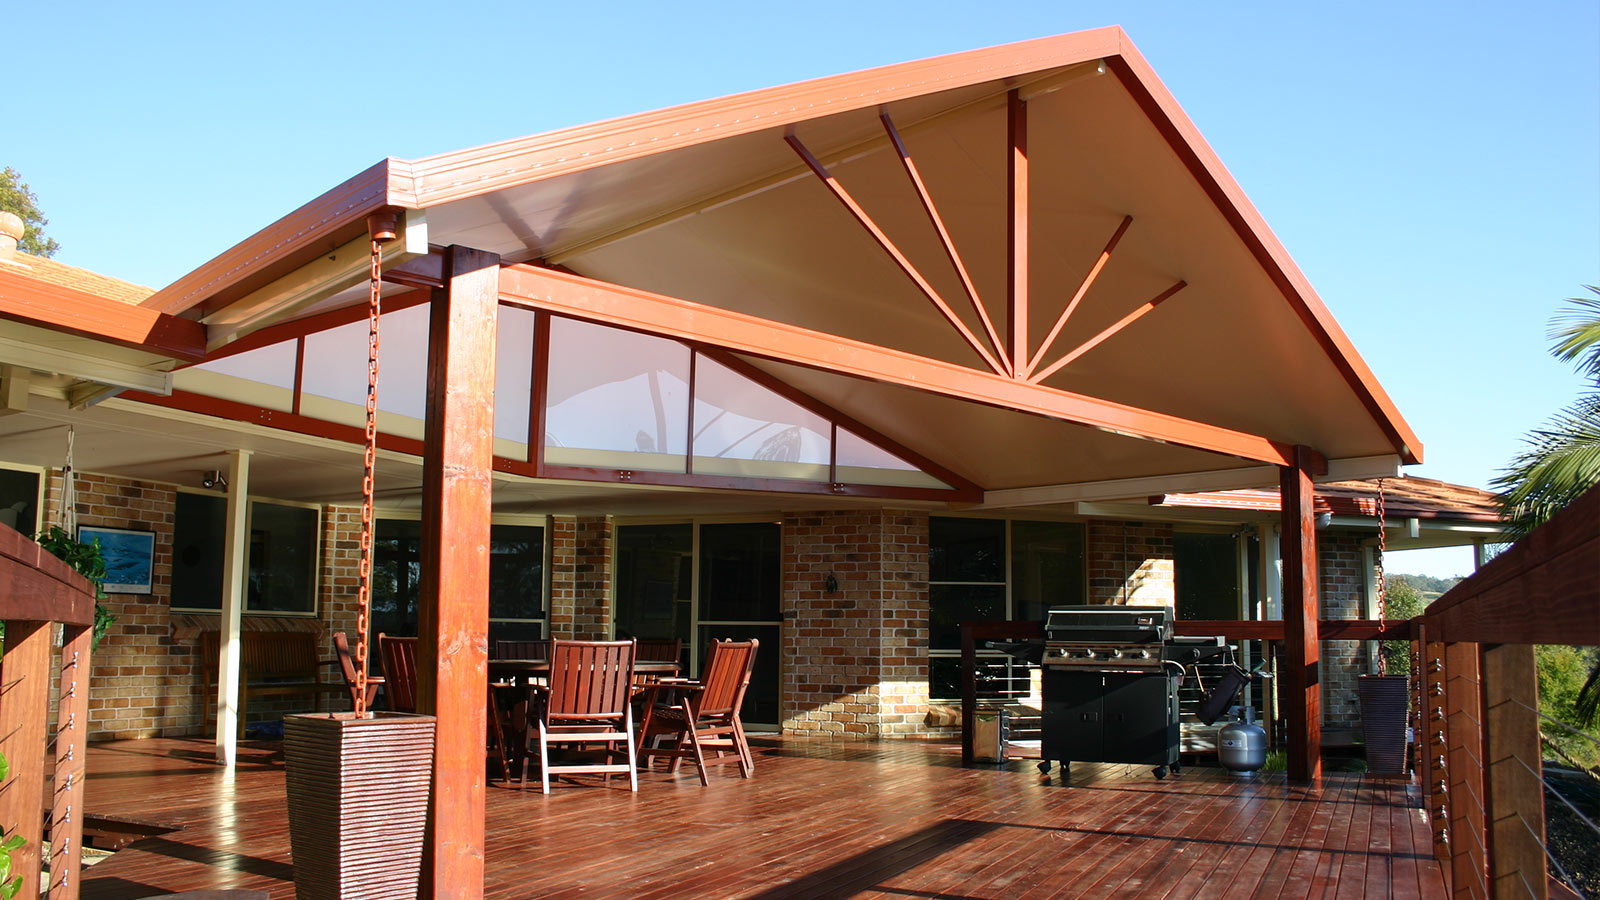 A Gabled Patio Roof over a hardwood Deck